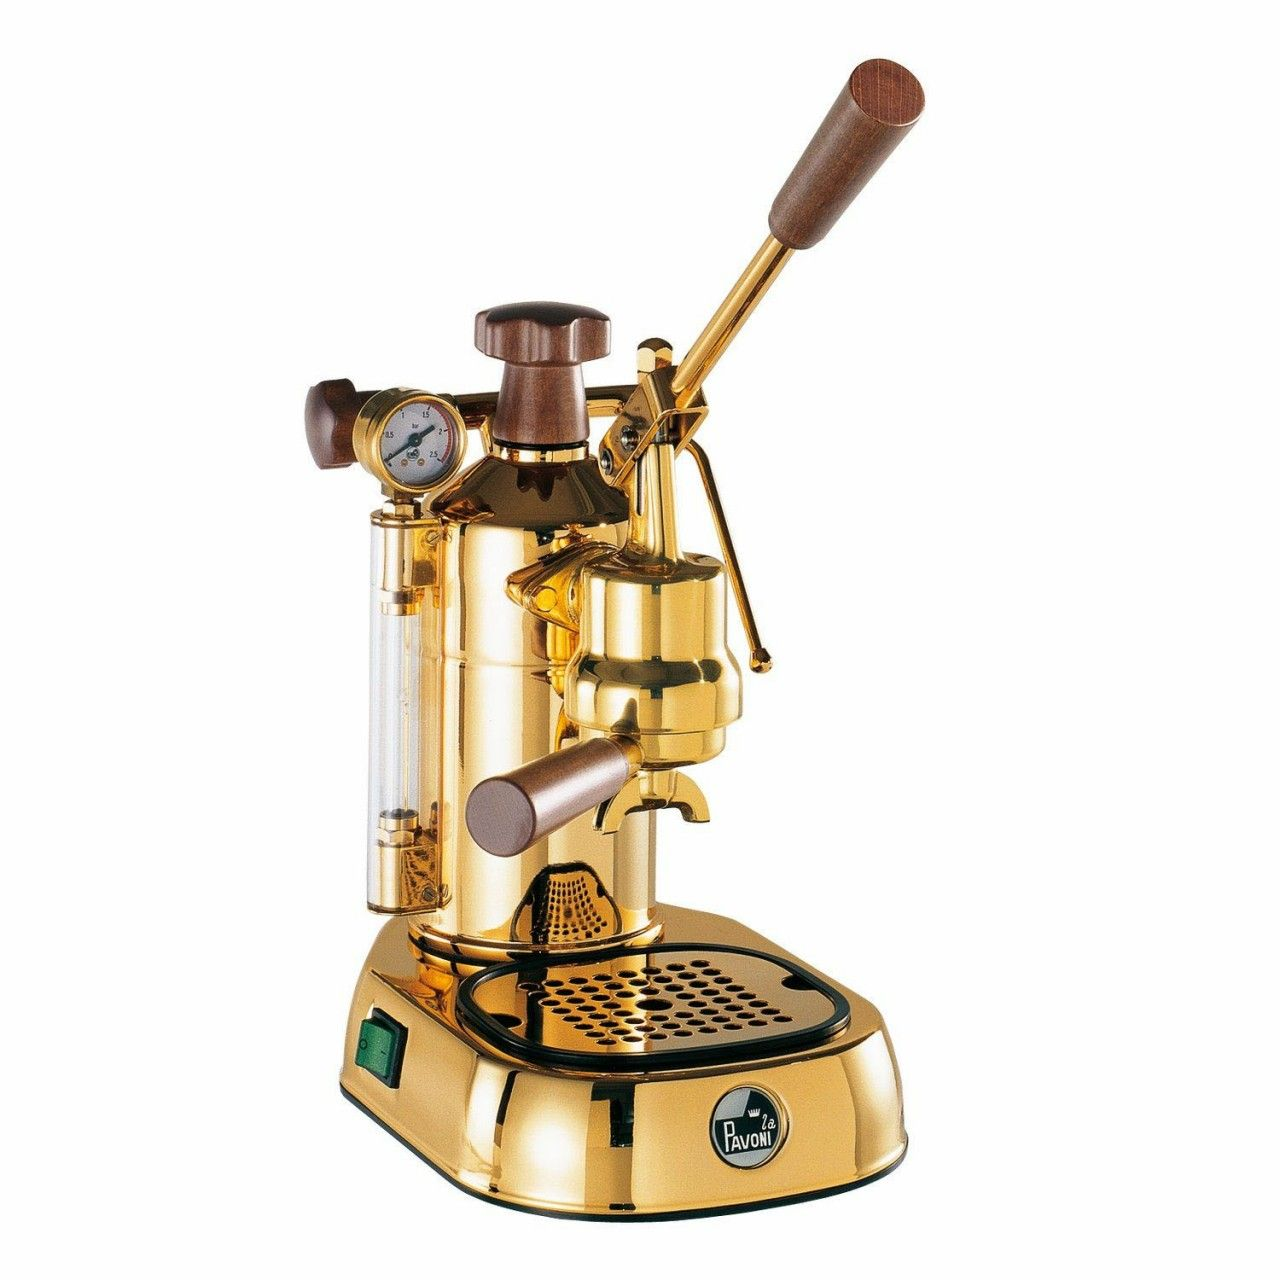 Lever Piston Espresso Machine By La Pavoni